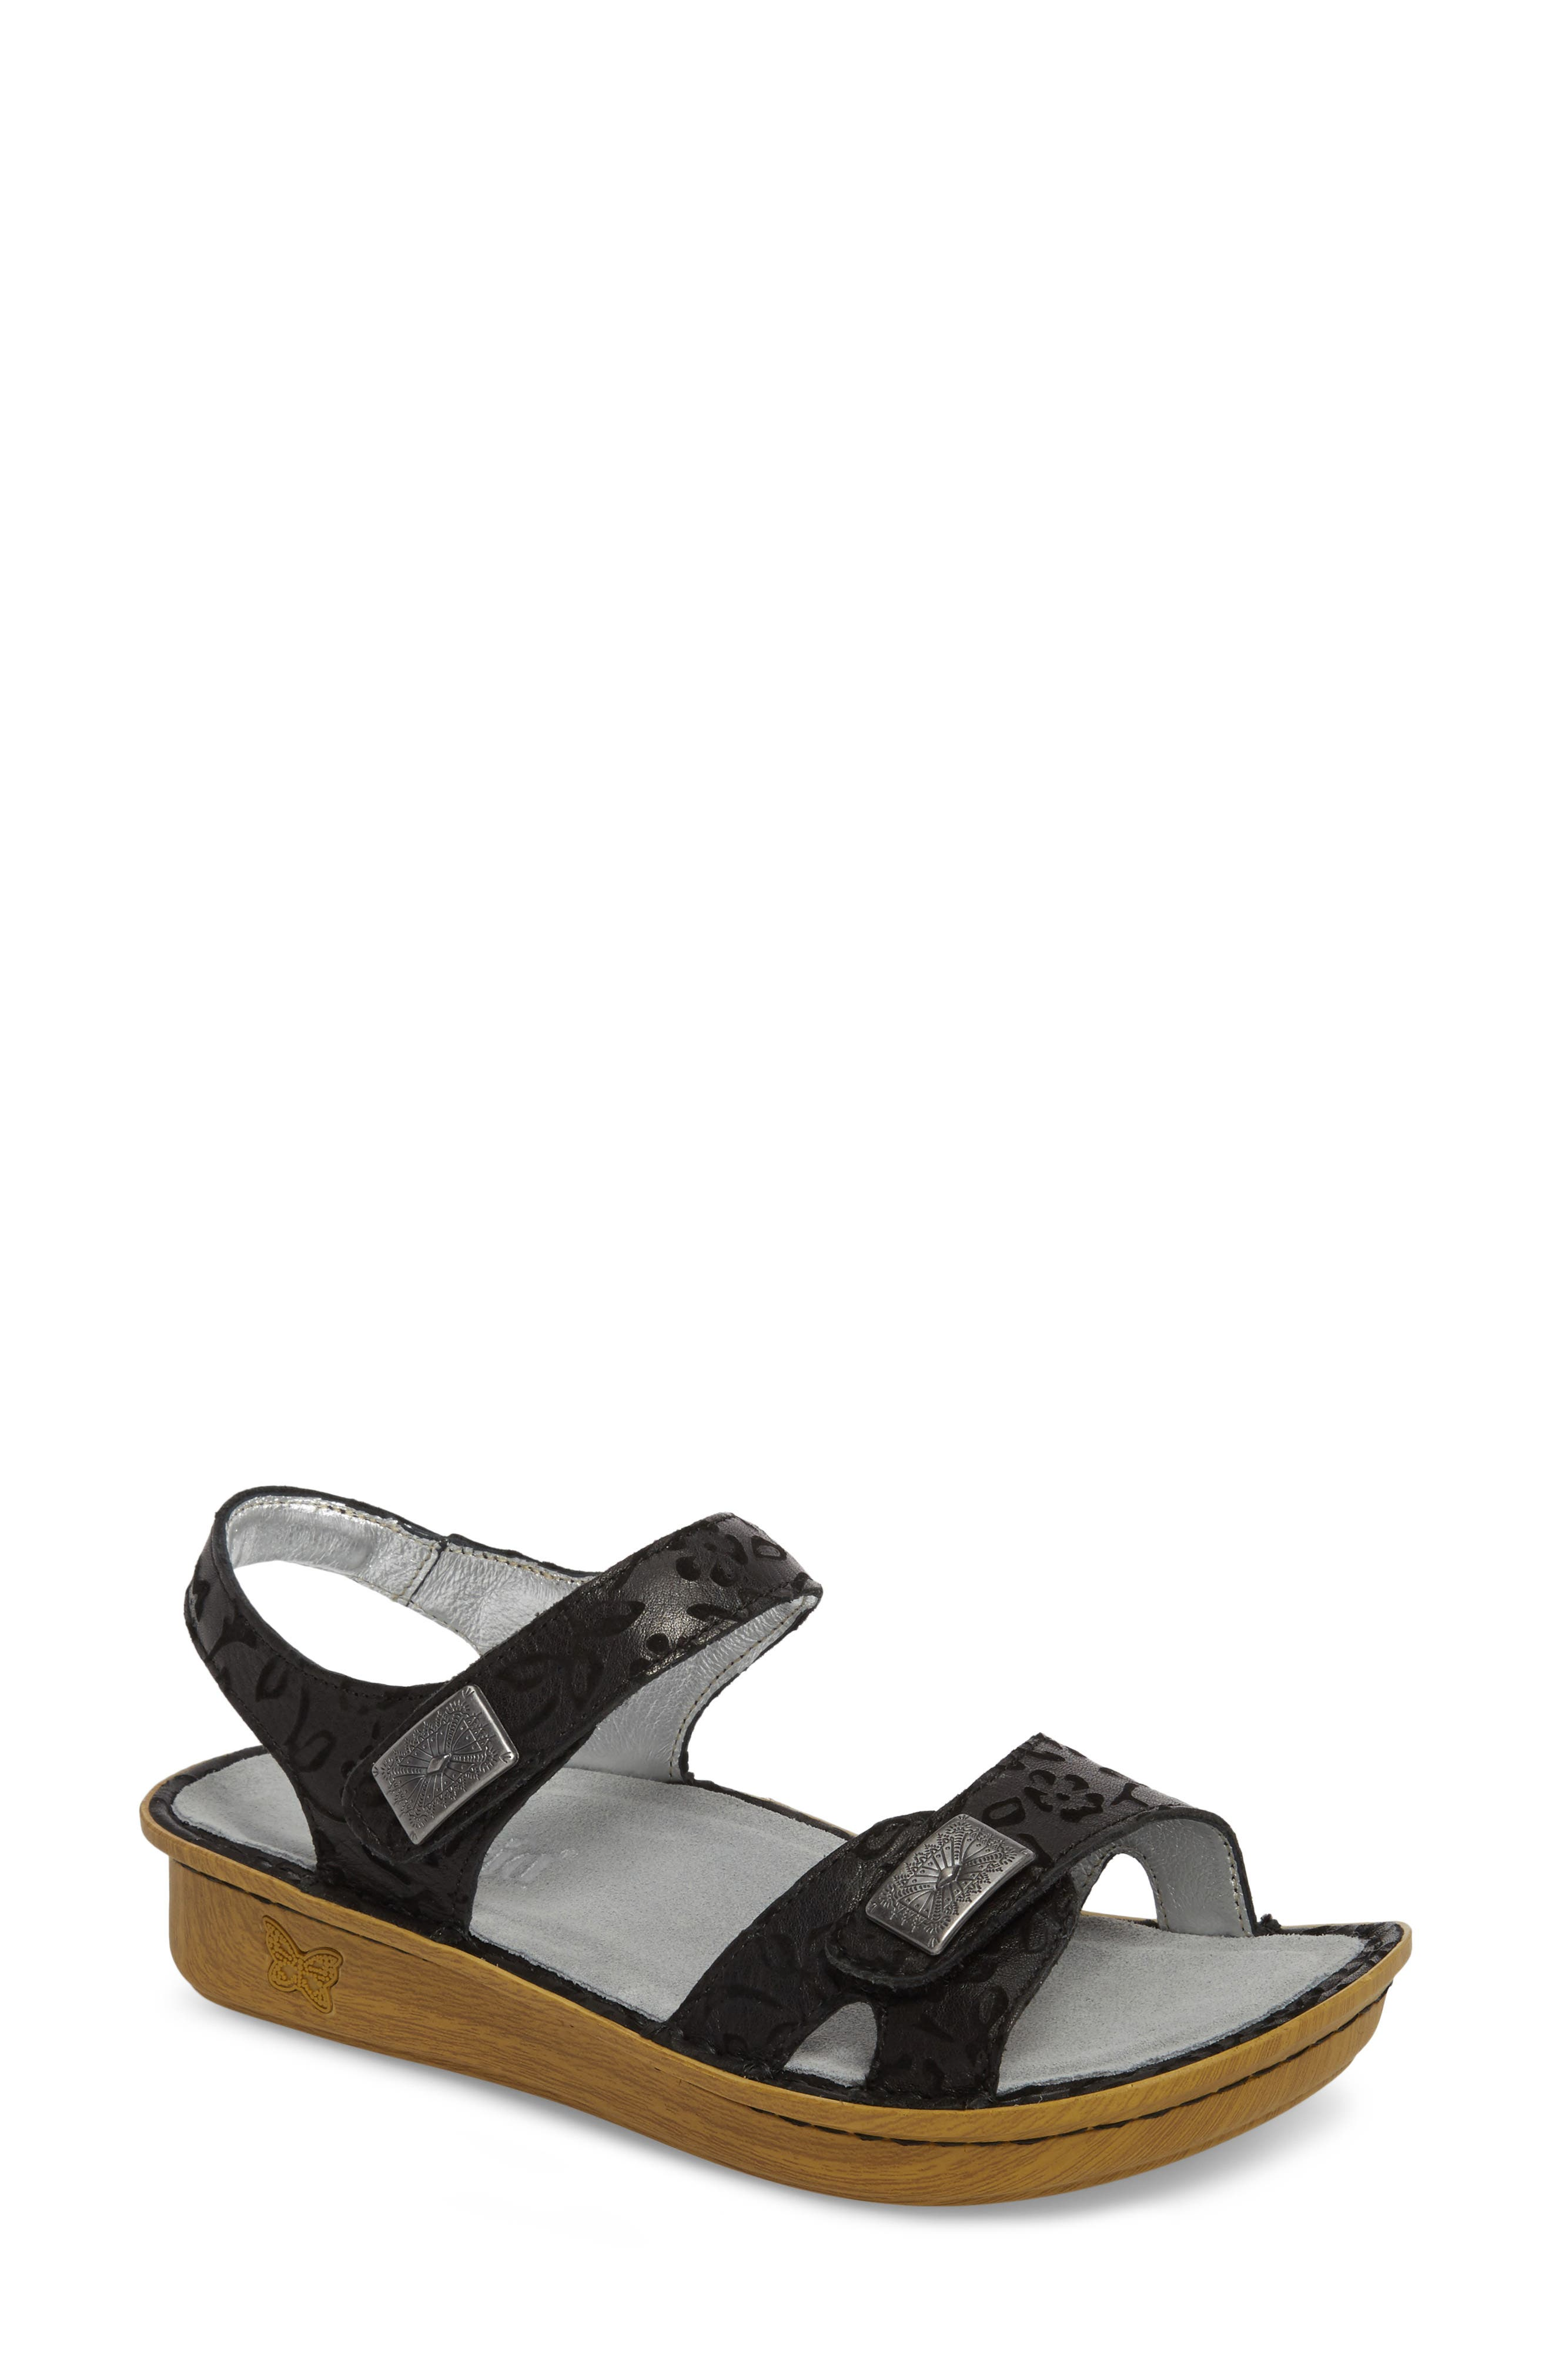 Vienna Sandal,                         Main,                         color, MORNING GLORY BLACK LEATHER